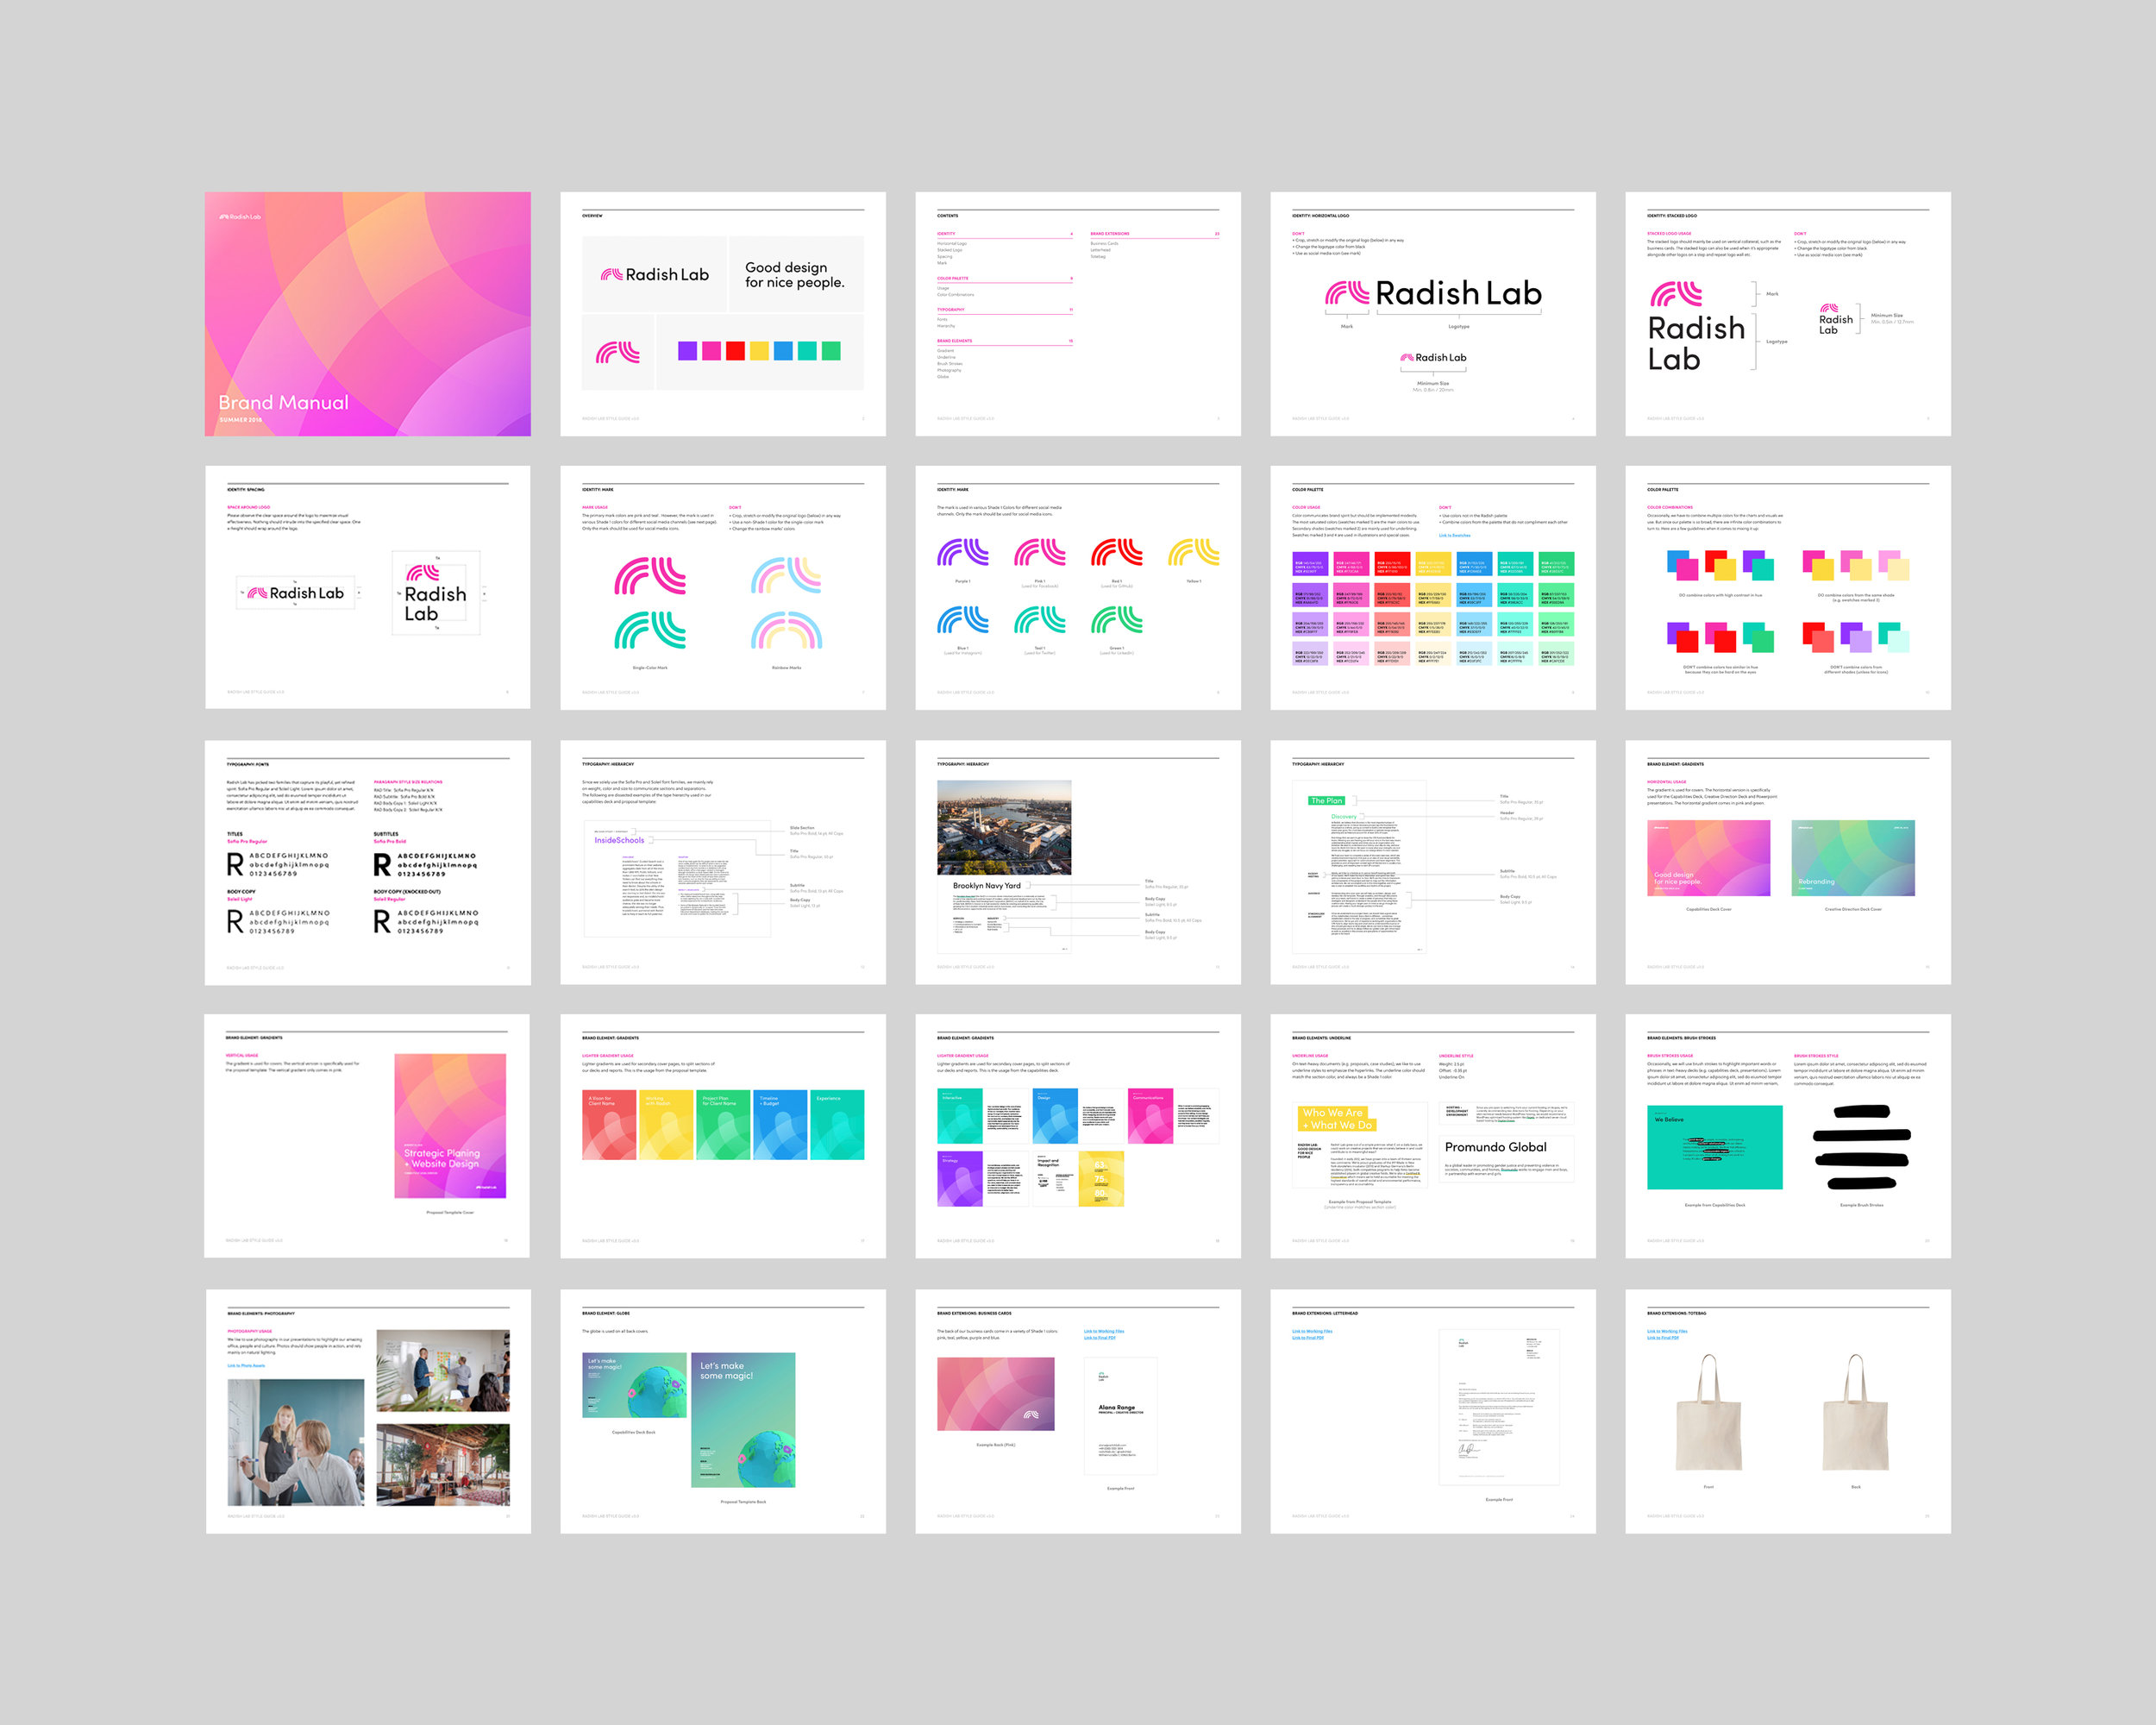 Brand Manual:  inside pages